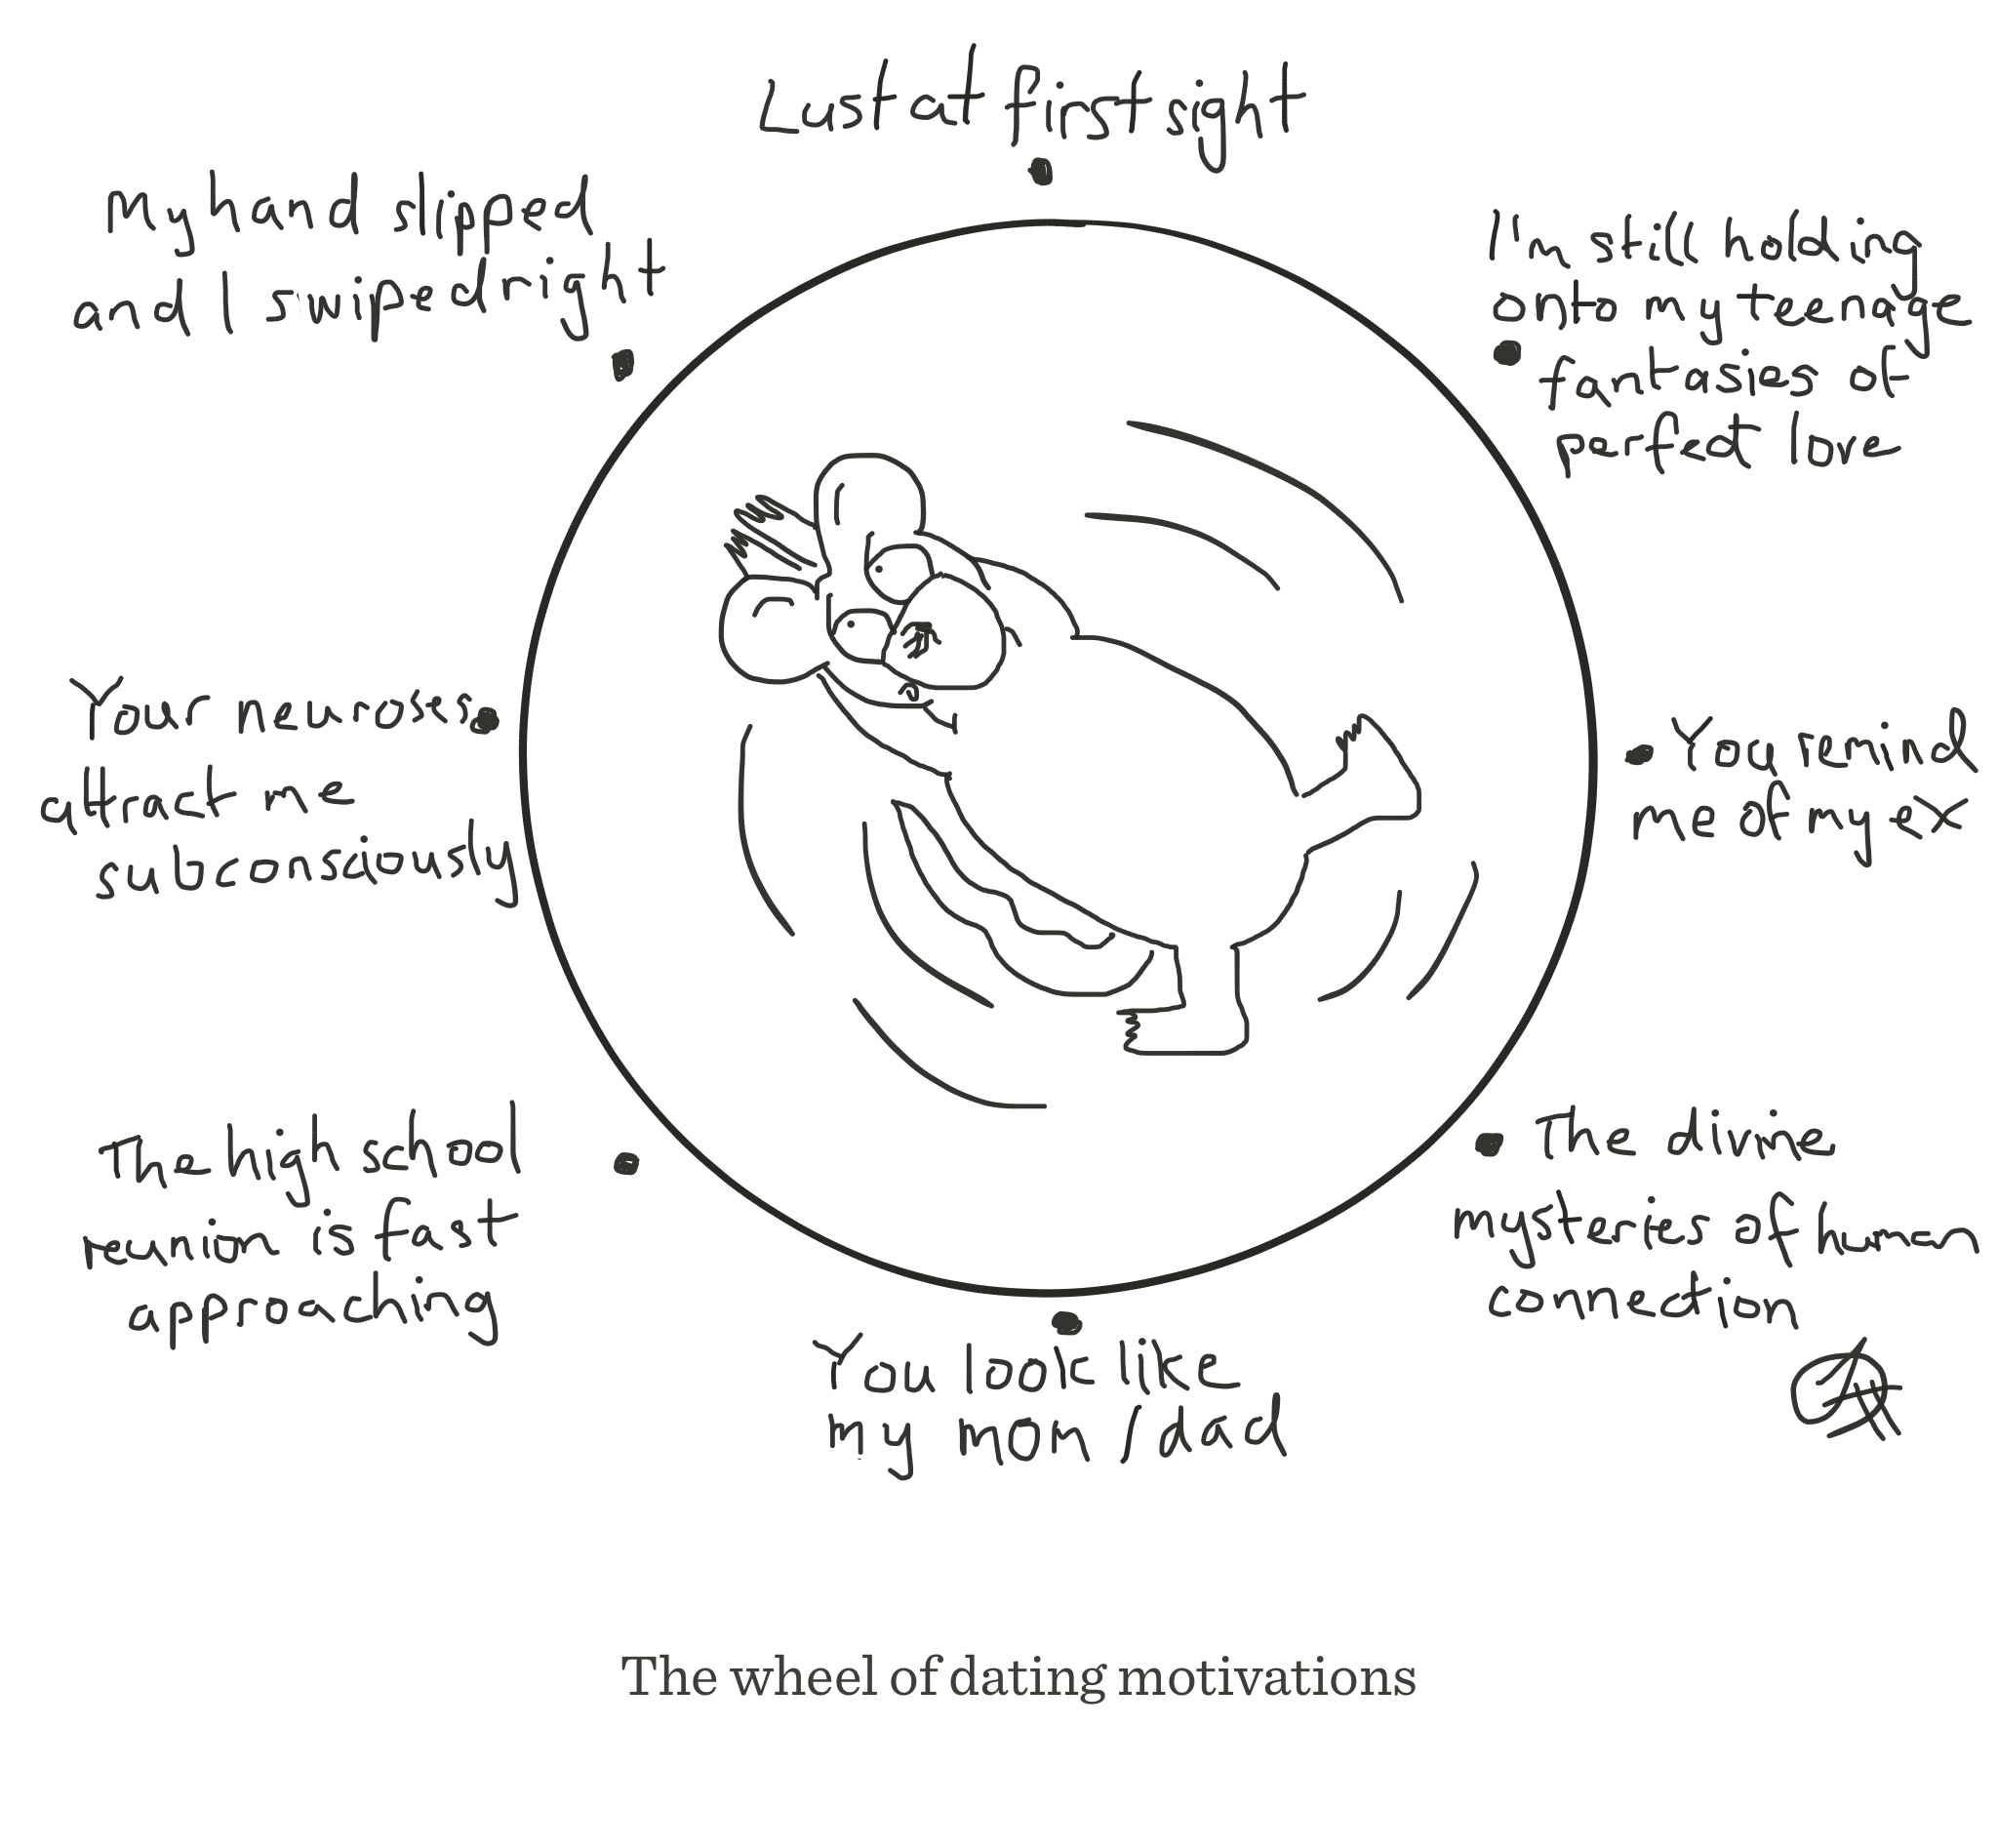 Dating motivation wheel, The Happy Rat, Sarah Hunt